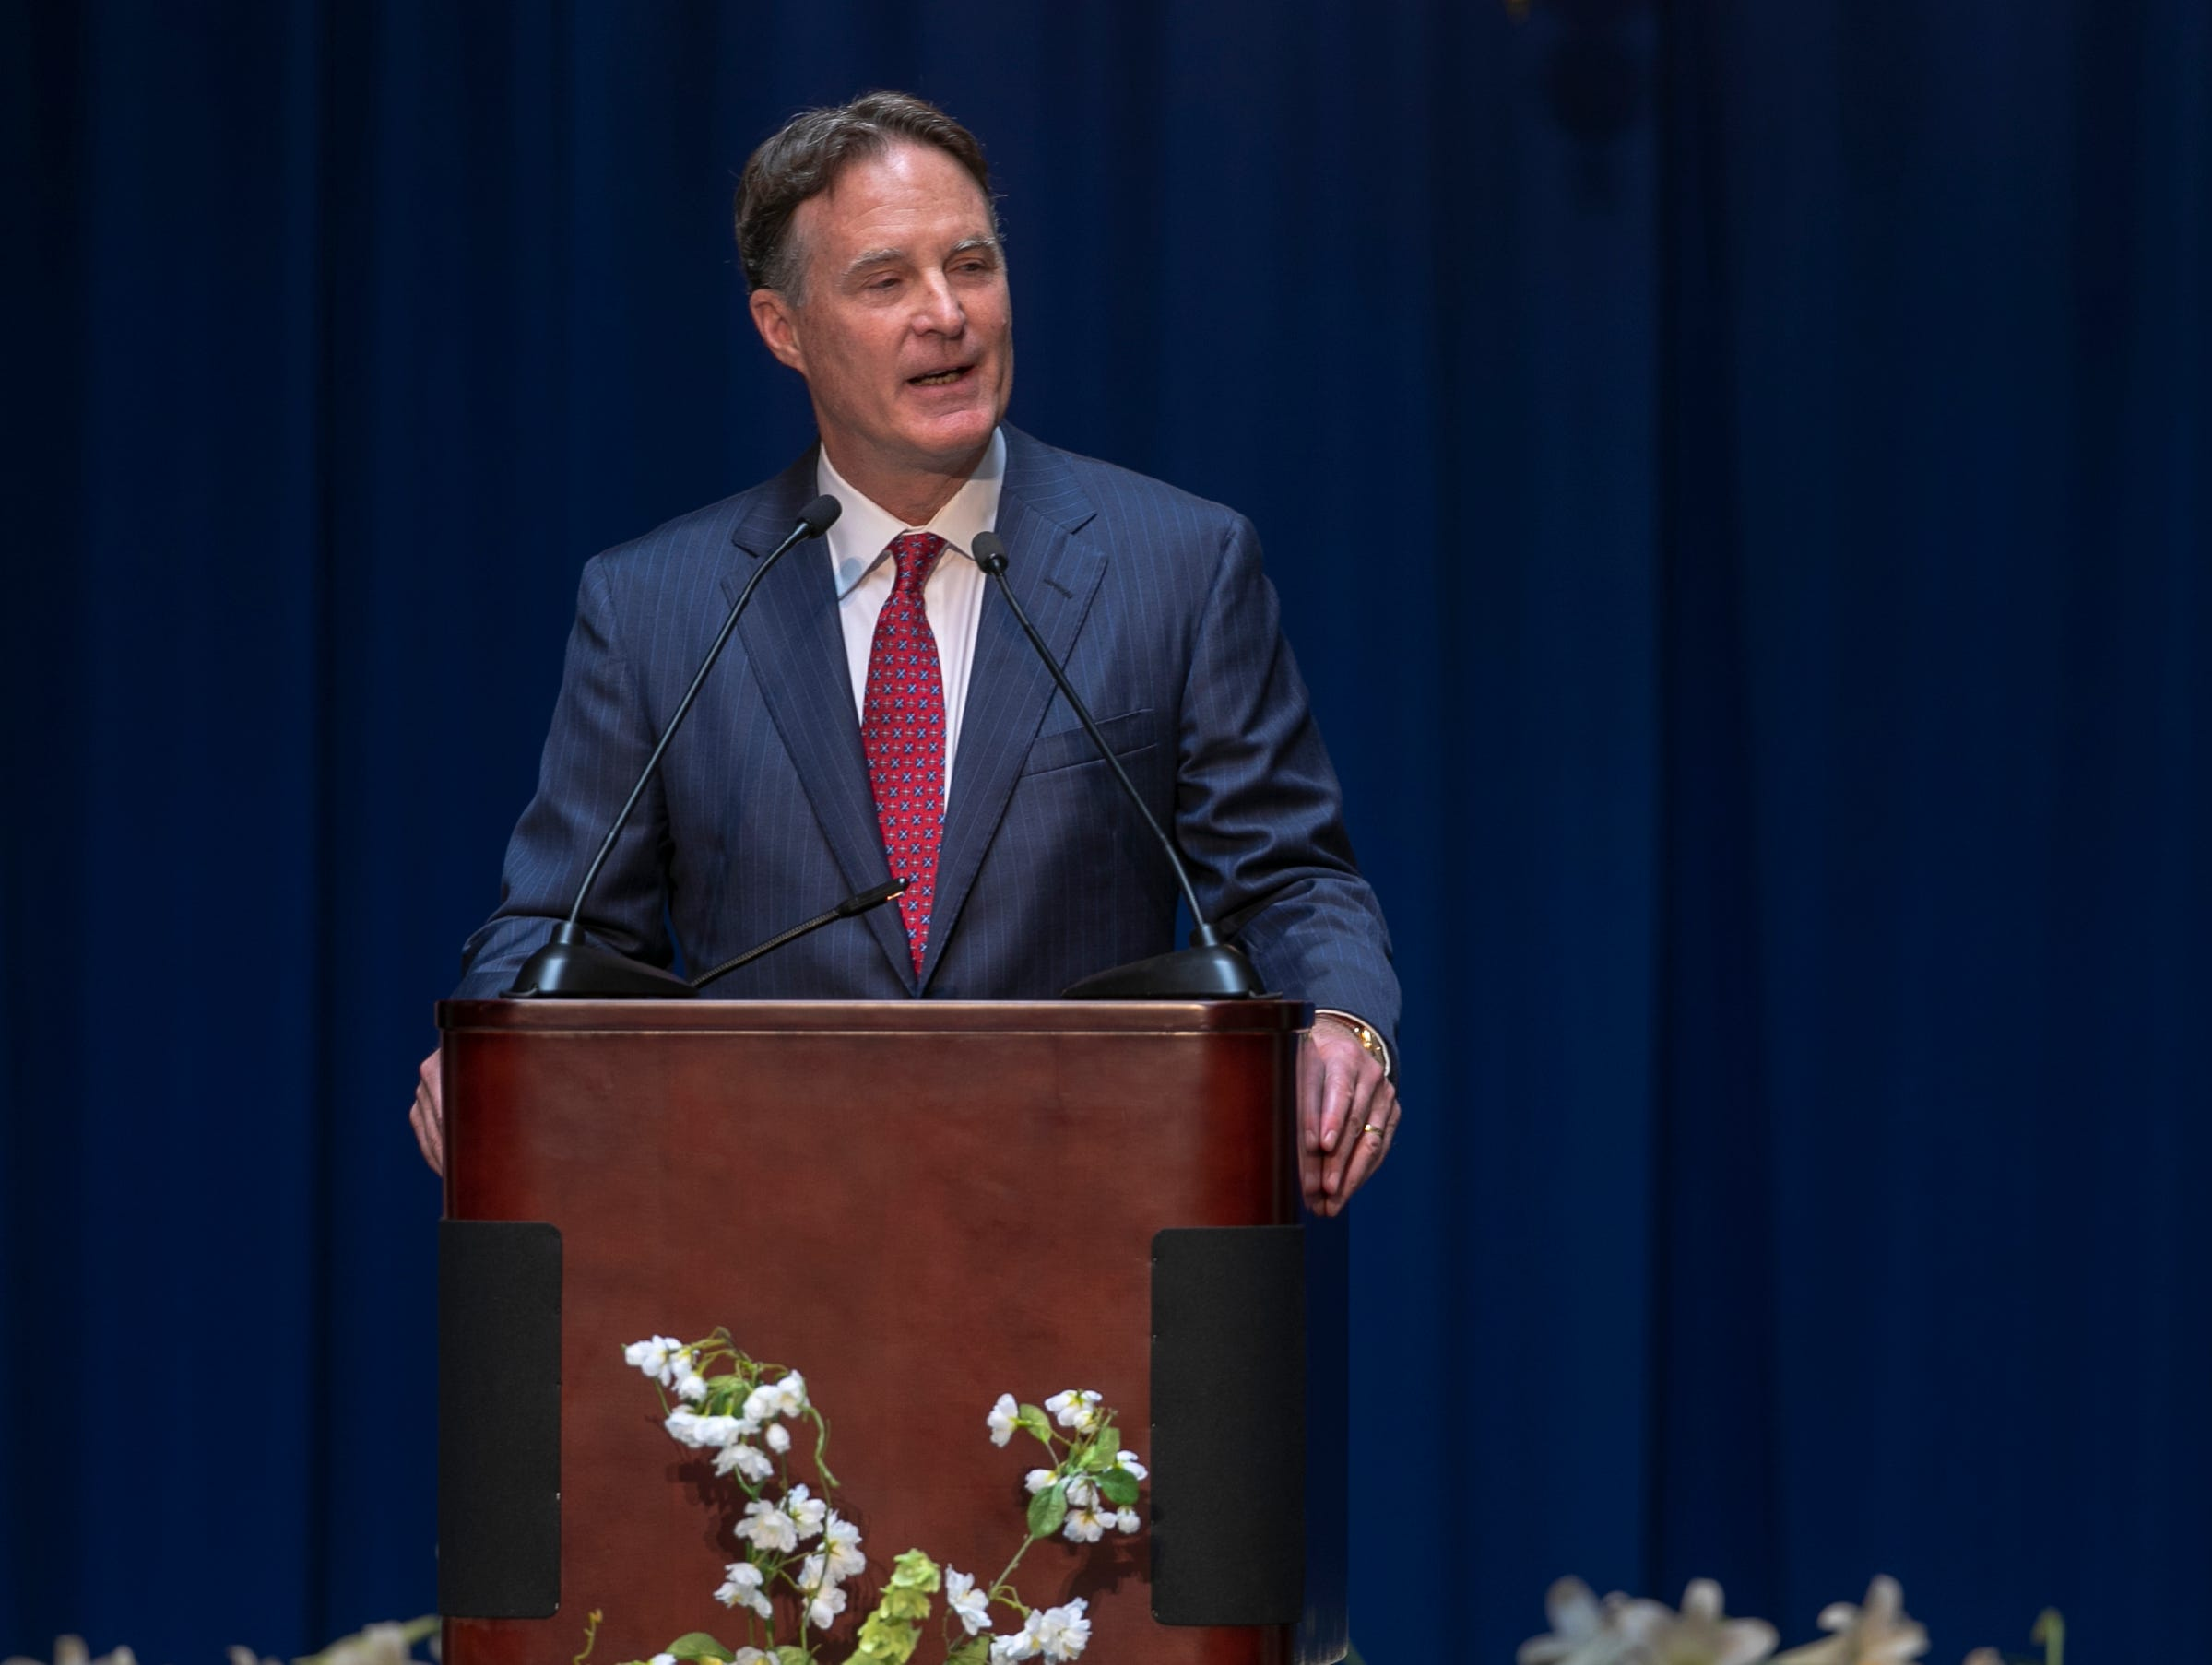 Evan Bayh speaks during a service for his father, Indiana's Birch Bayh, who died on March 14, and was a three-term U.S. Senator, Indiana Statehouse, Indianapolis, Wednesday, May 1, 2019.